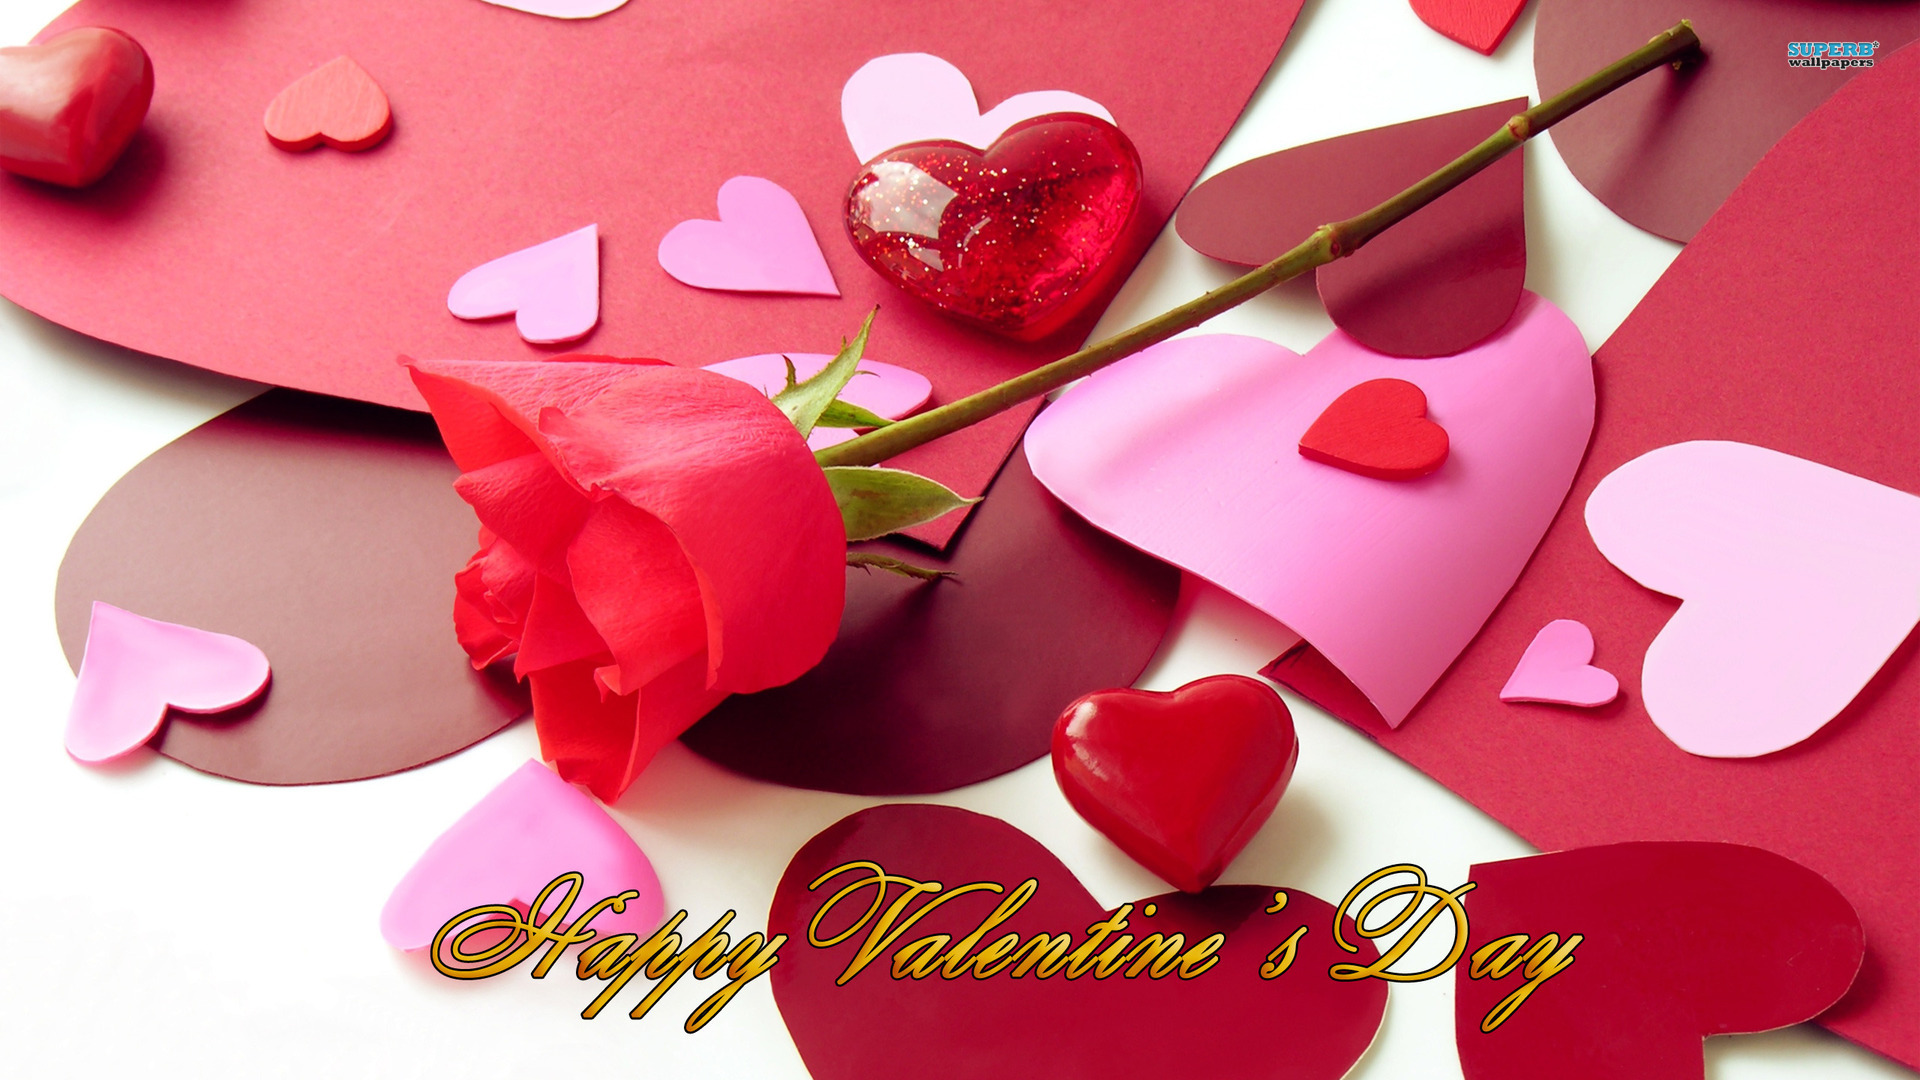 valentinesday special images 4